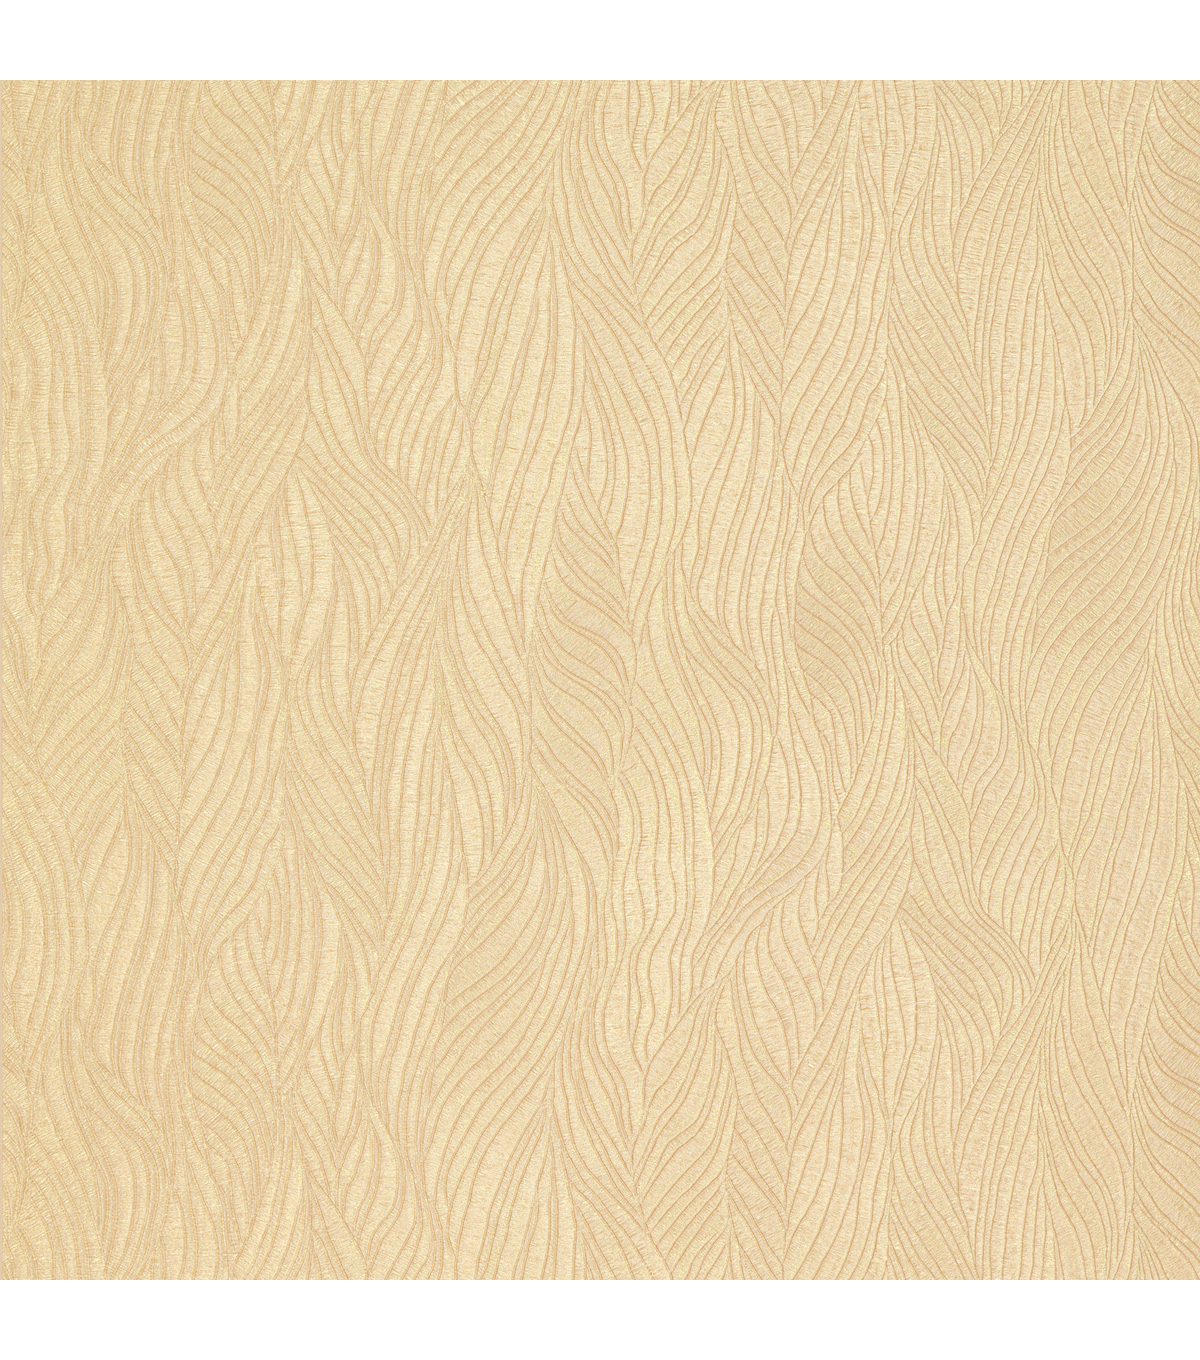 Nephi Gold Swirling Texture Wallpaper Sample